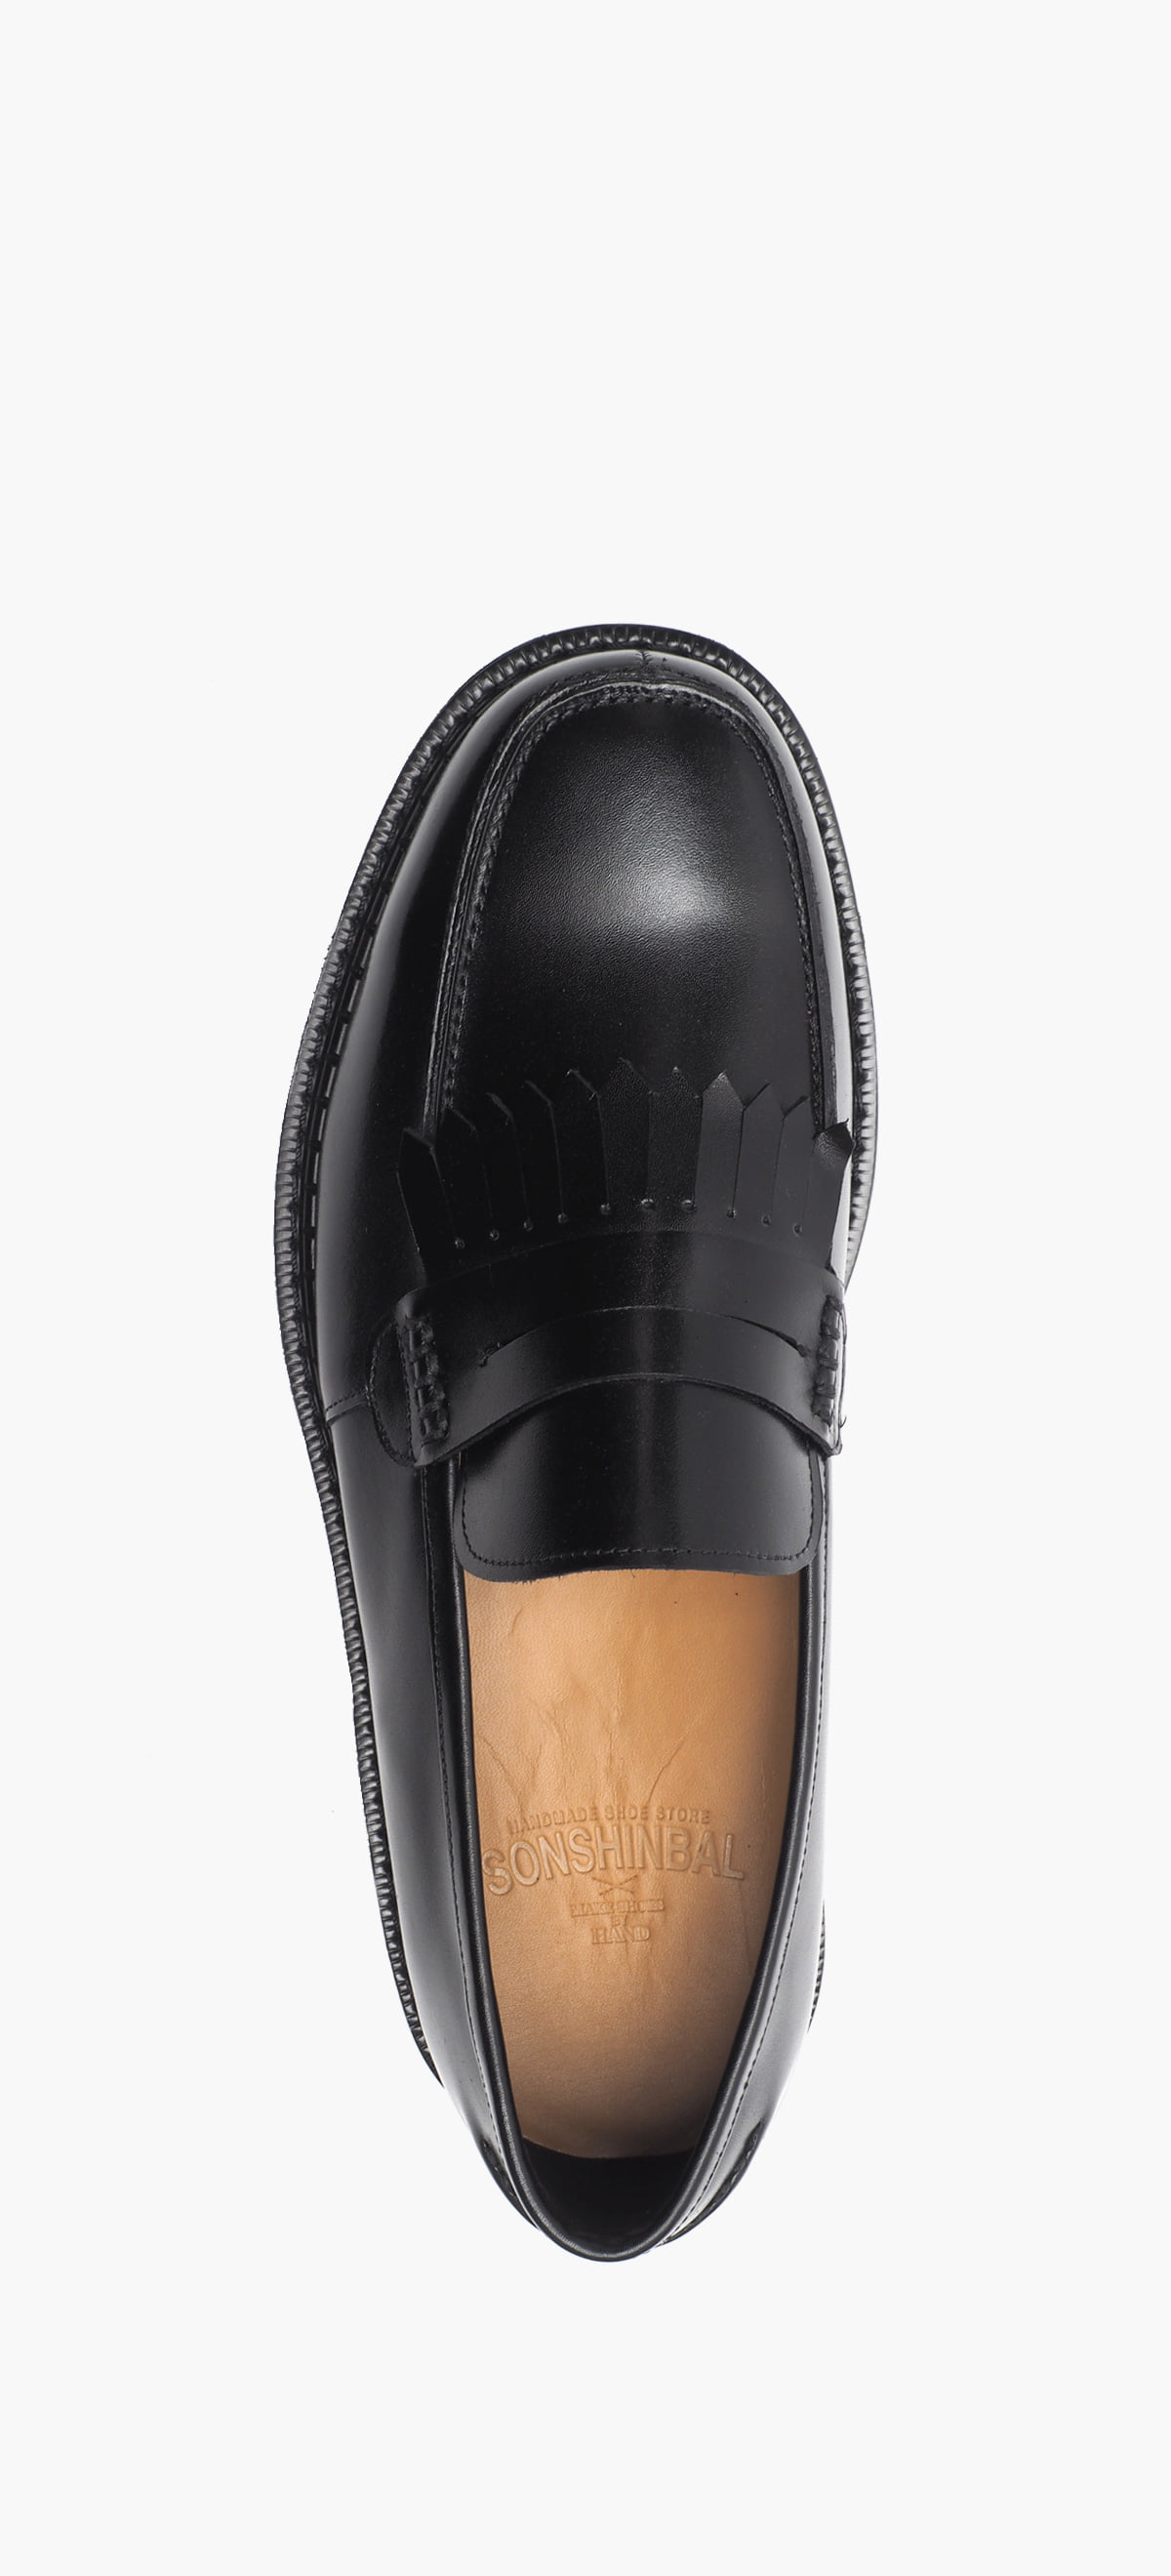 Penny Loafer 2024-19 Black Kip